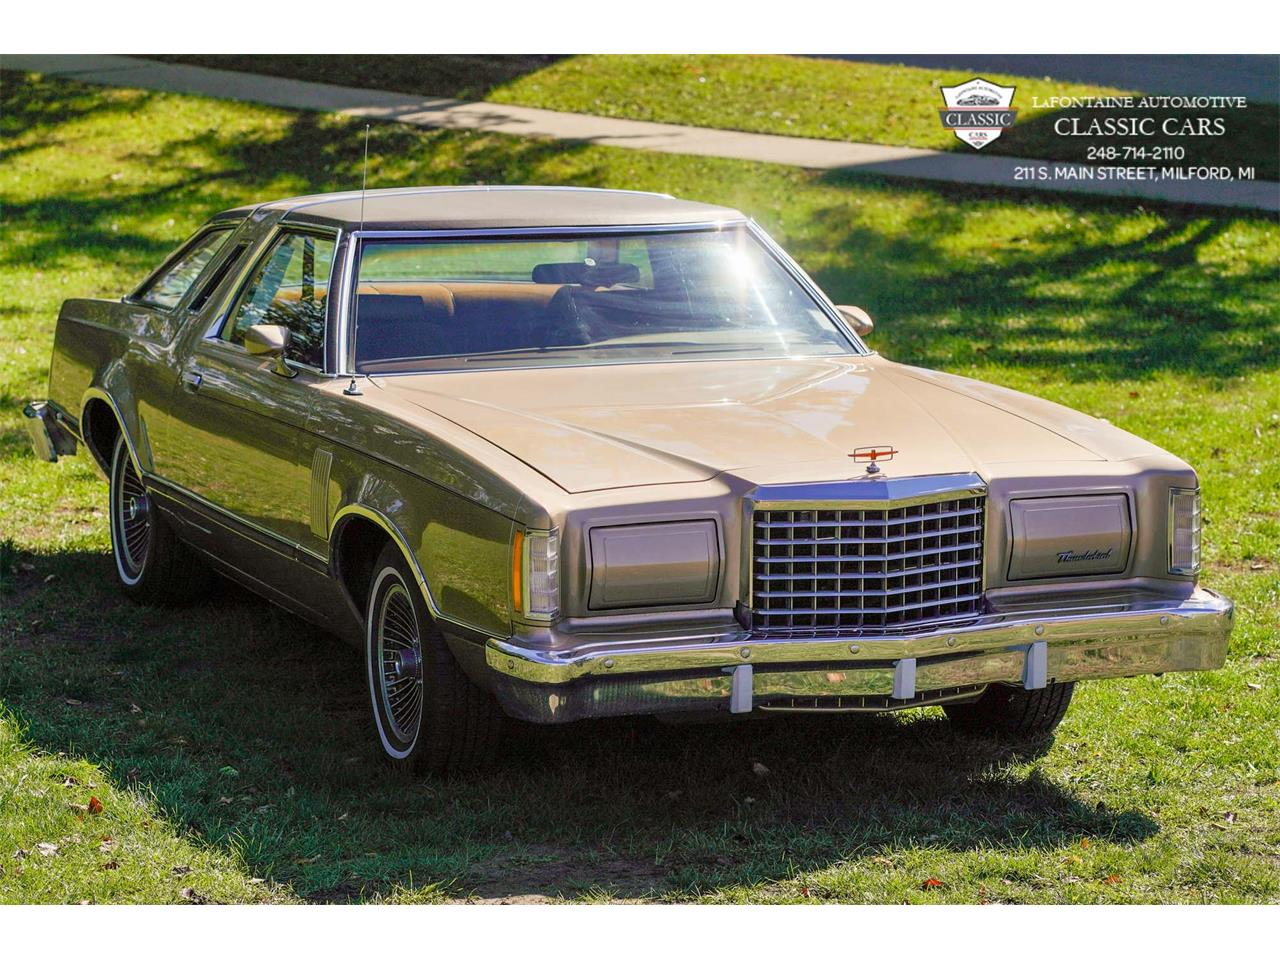 1977 Ford Thunderbird (CC-1412624) for sale in Milford, Michigan